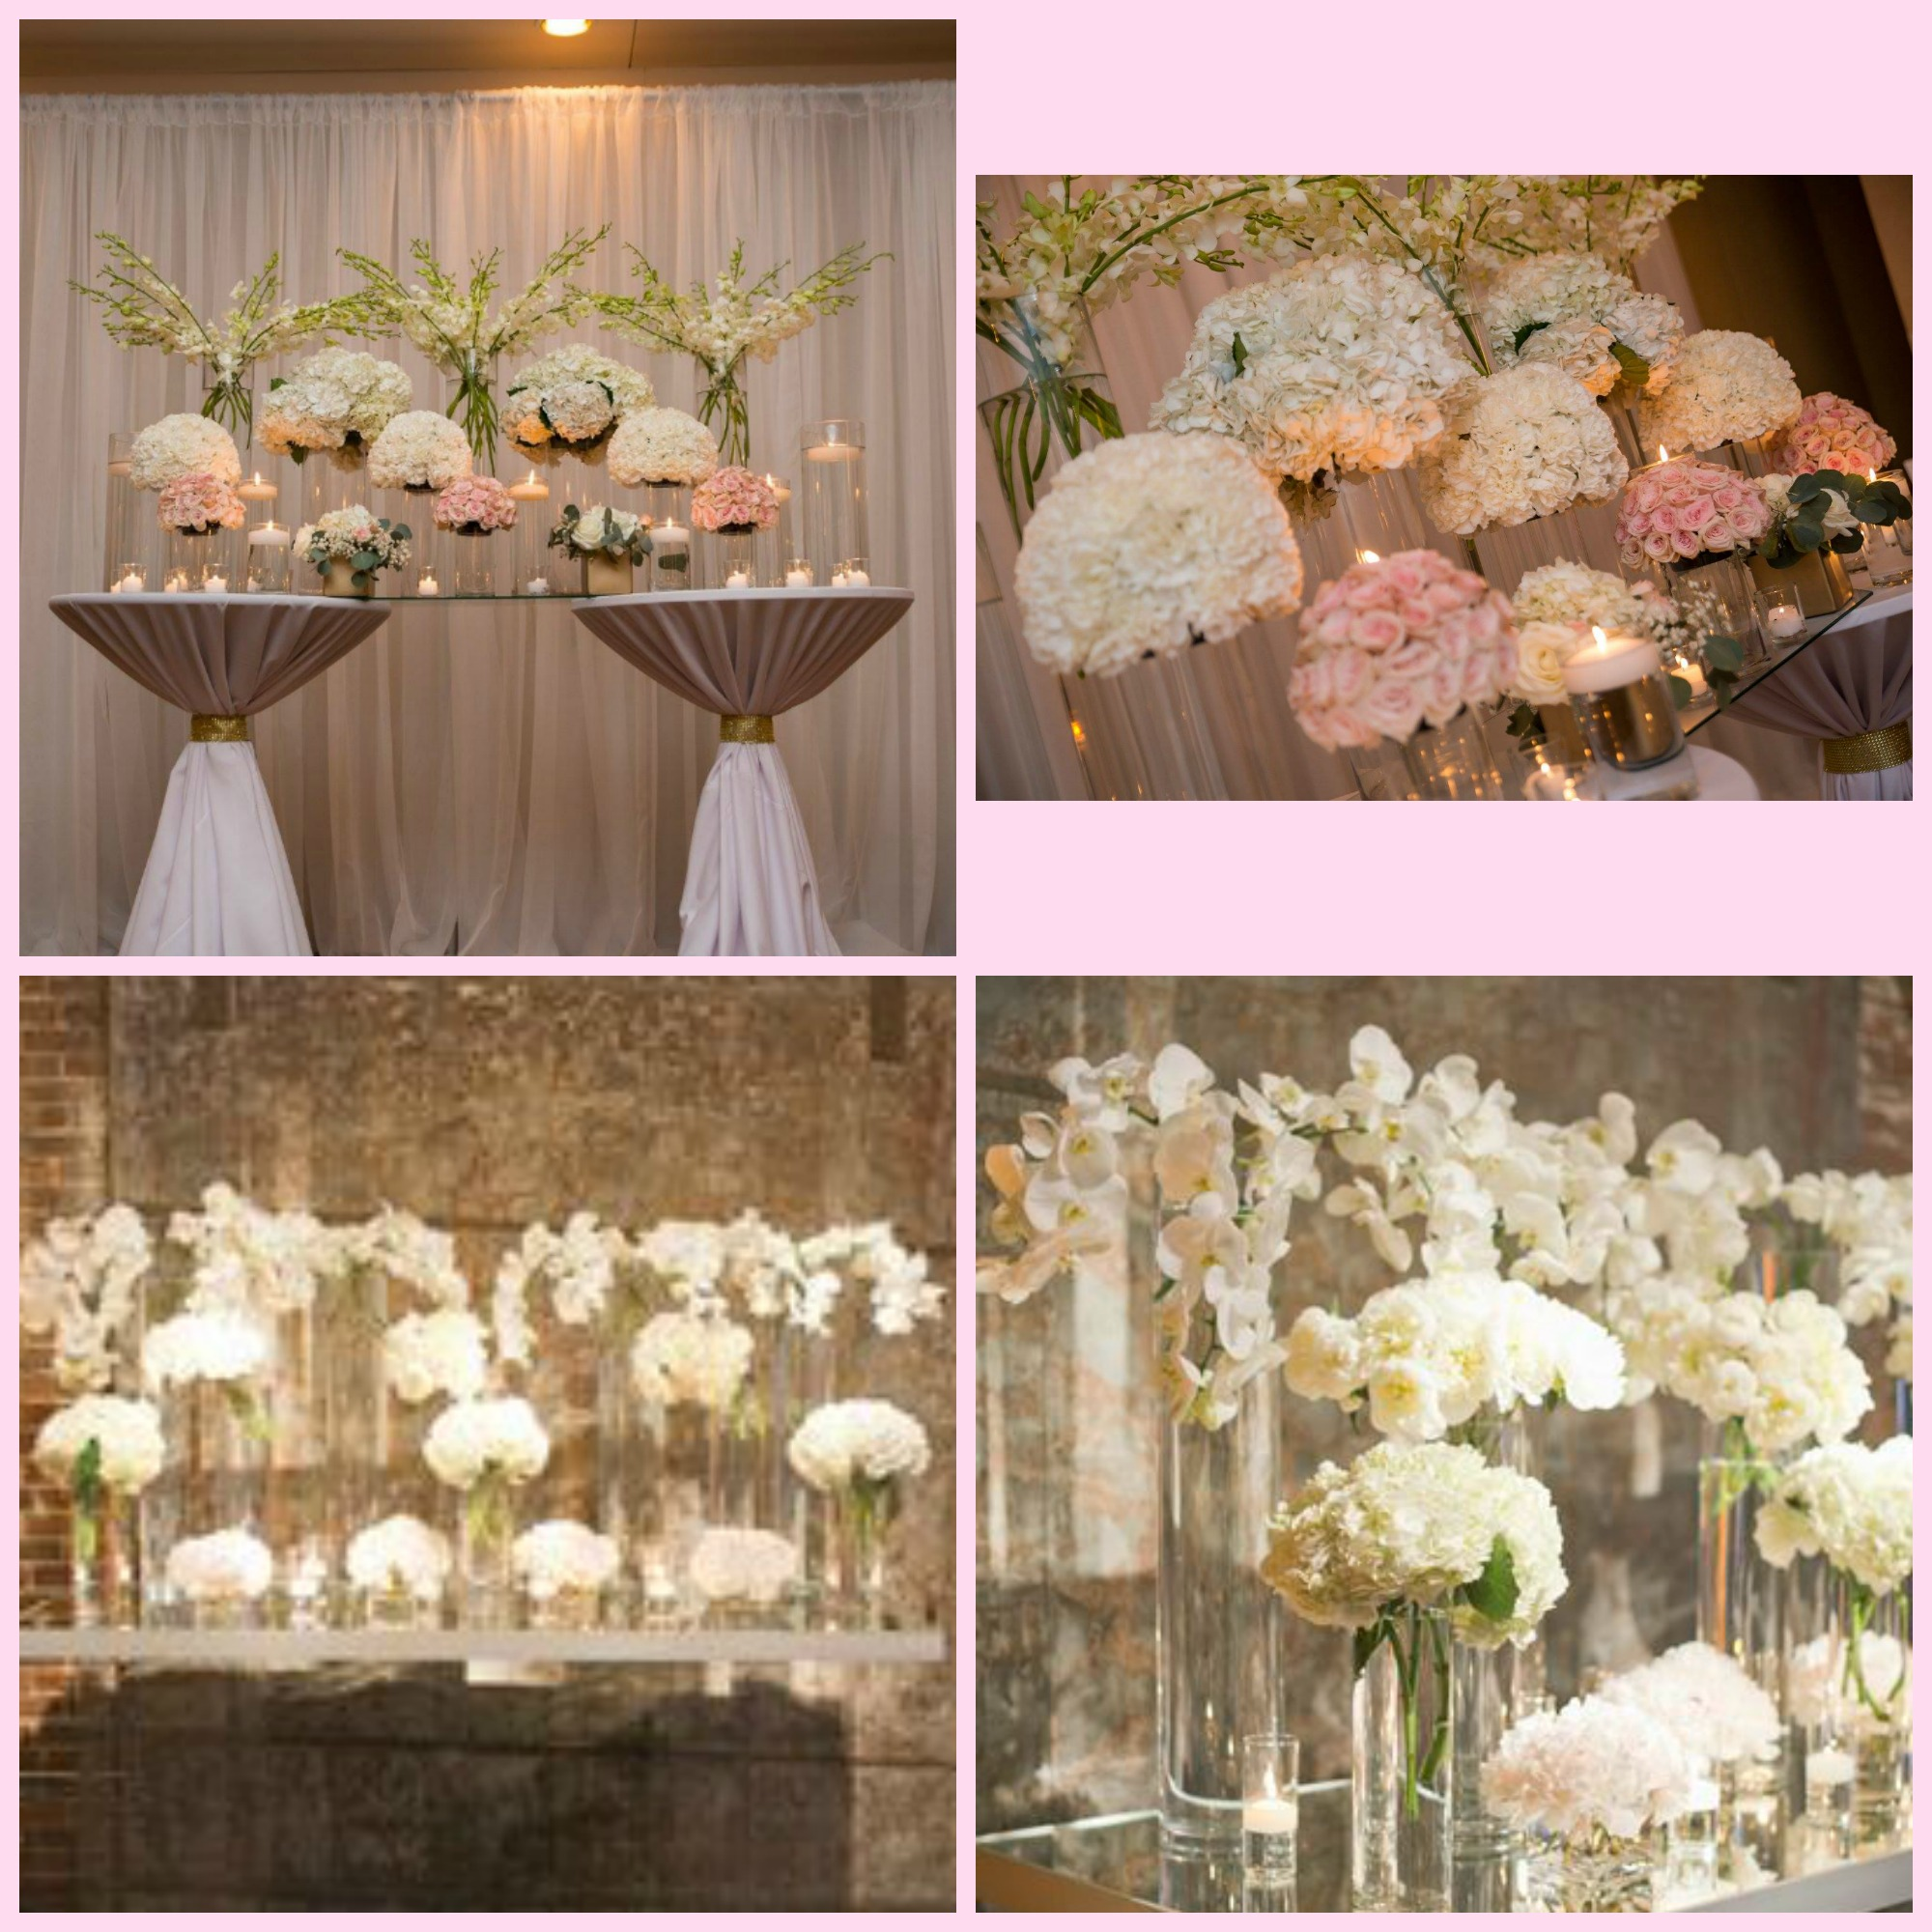 Top images -  Giraffe Photography , Bottom images - pinterest photos from bride